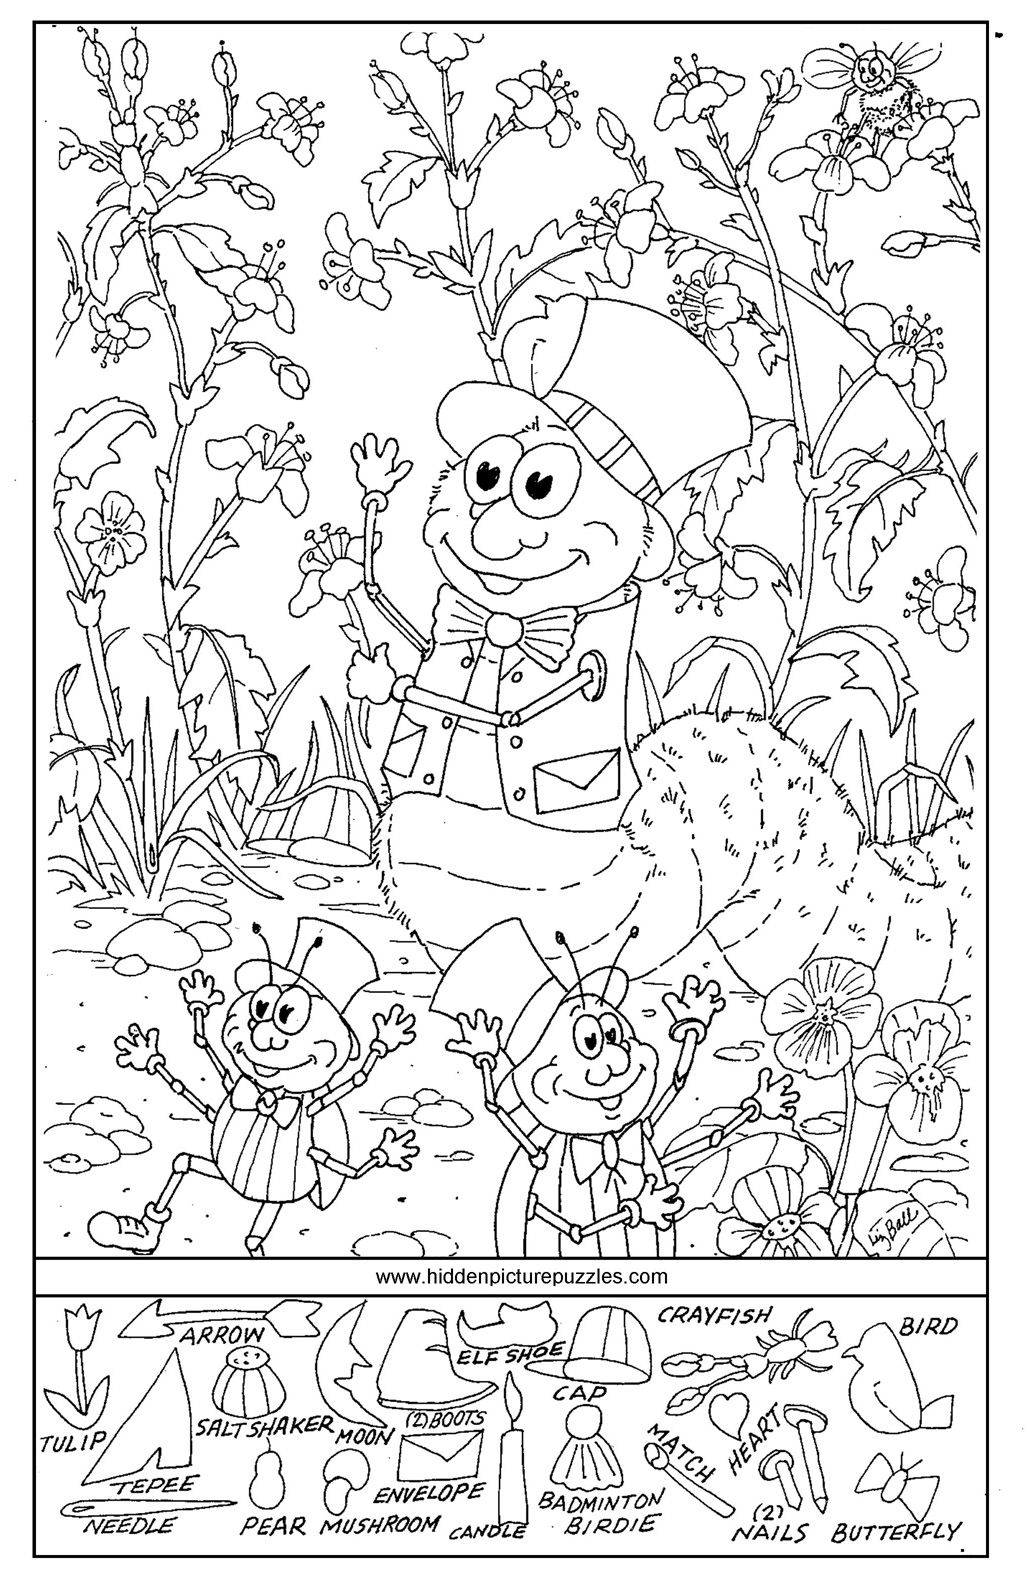 Printables Hidden Pictures Worksheets 1000 images about hidden pictures on pinterest coloring maze and good samaritan